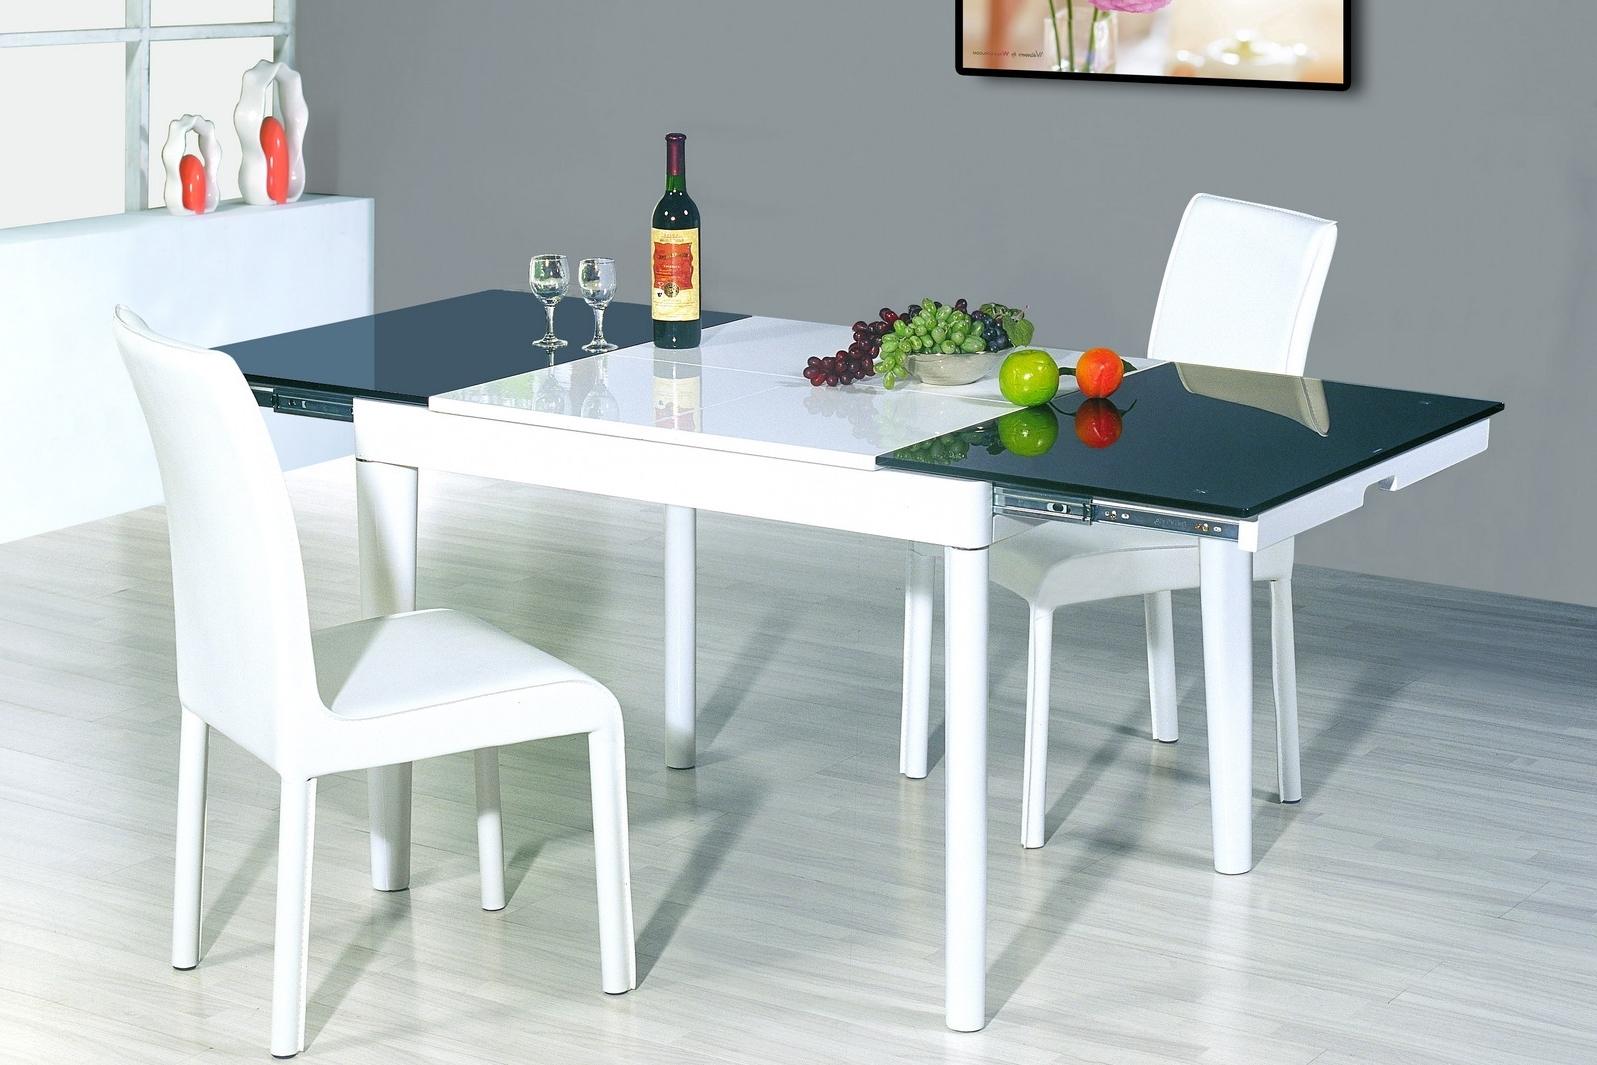 Fancy Futuristic Modern Kitchen Table Set With Expandable Top And Pertaining To Recent White Square Extending Dining Tables (View 6 of 25)